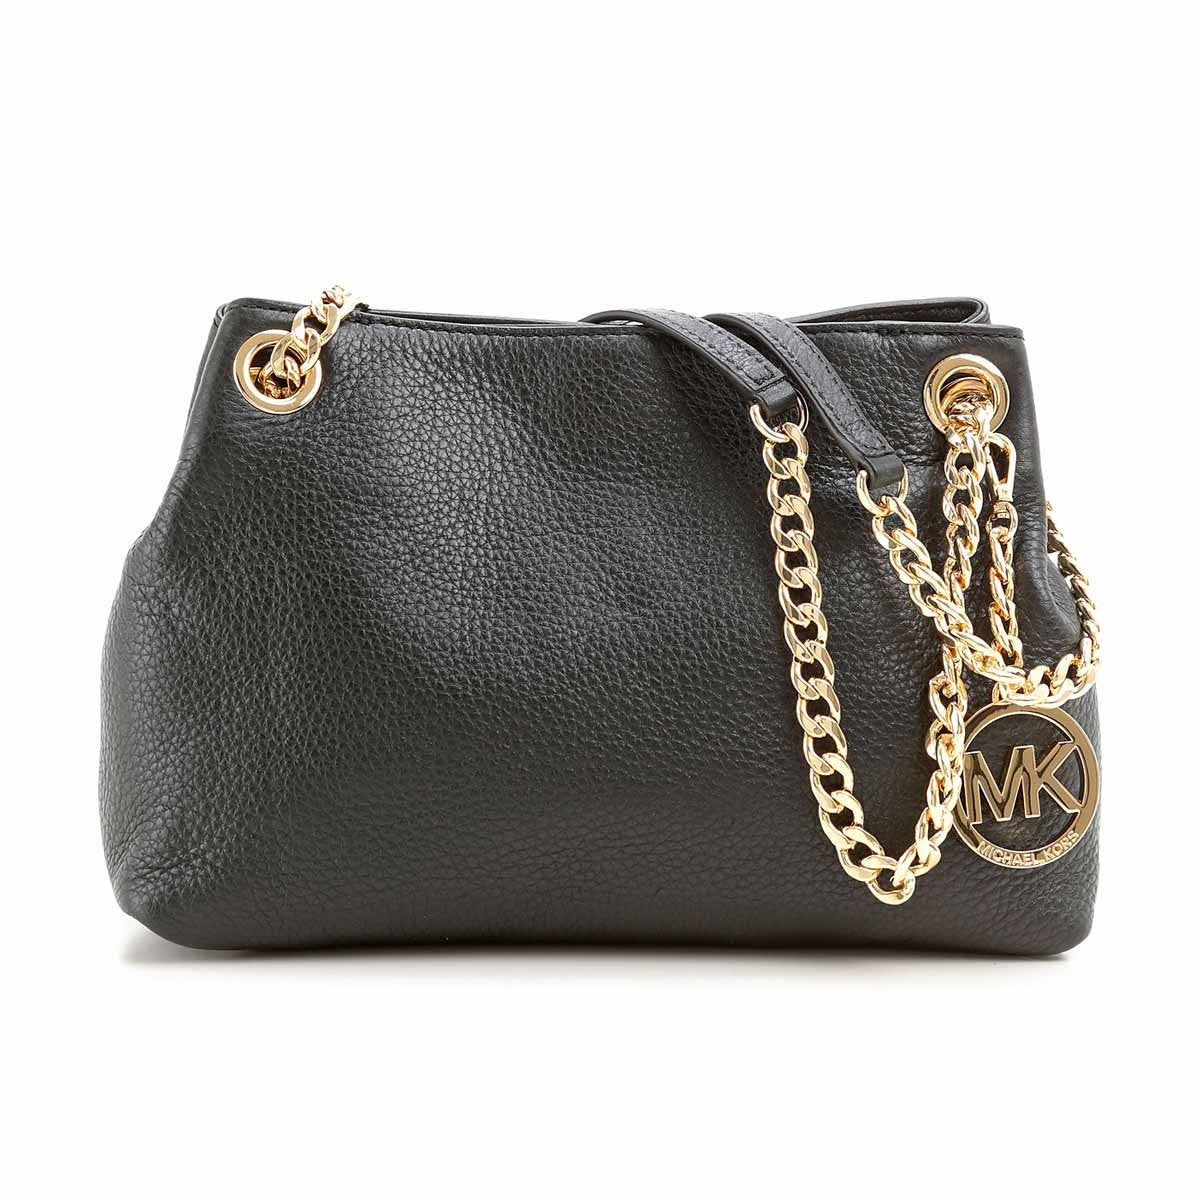 Michael Kors 30S5GTCM2L-001 Women's Jet Set Chain Black Pebbled Leather Medium Messenger